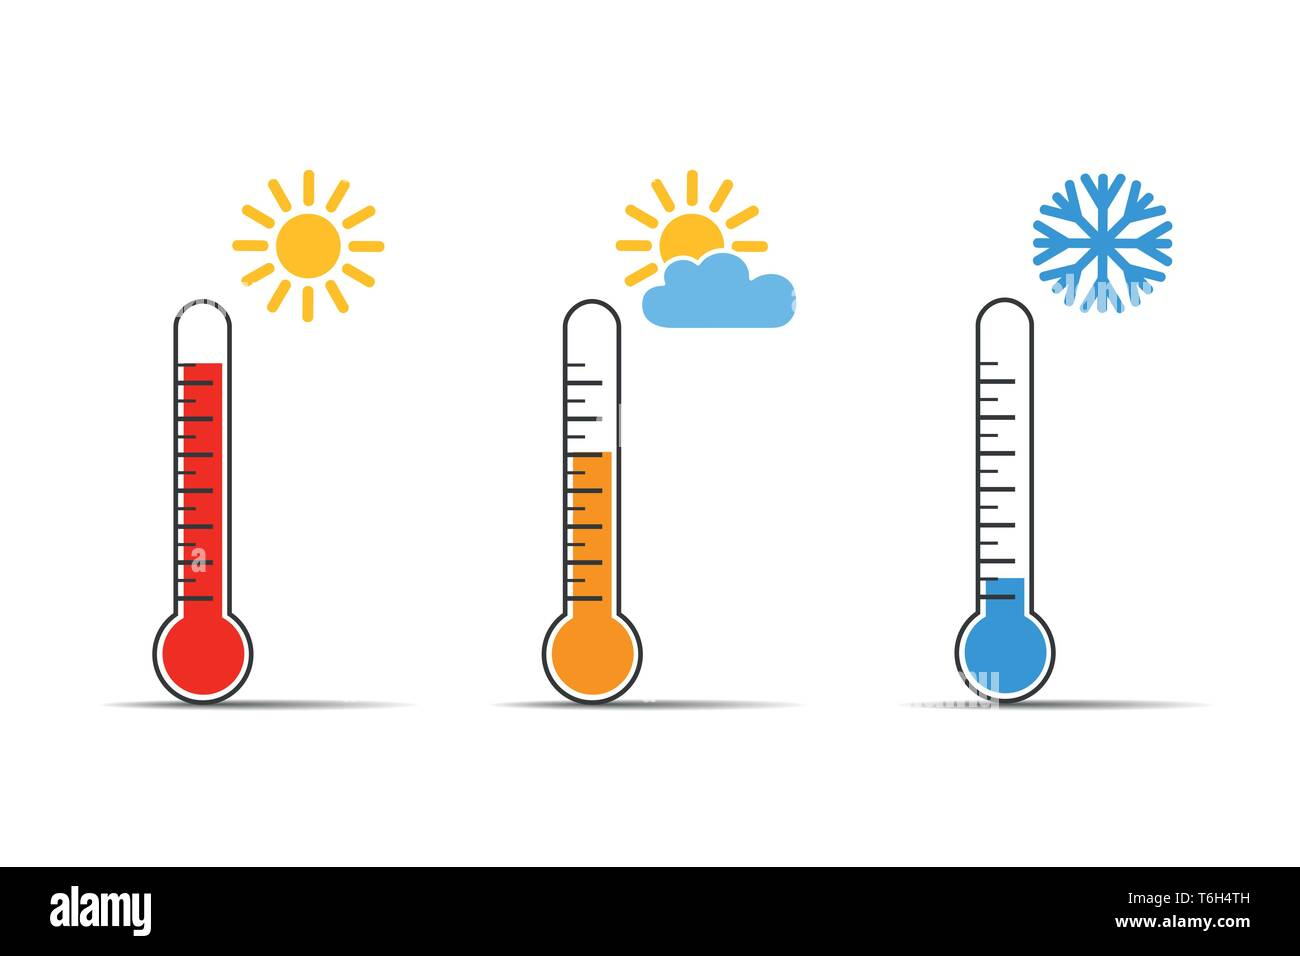 heat thermometer icon symbol hot and cold weather vector illustration EPS10 - Stock Vector